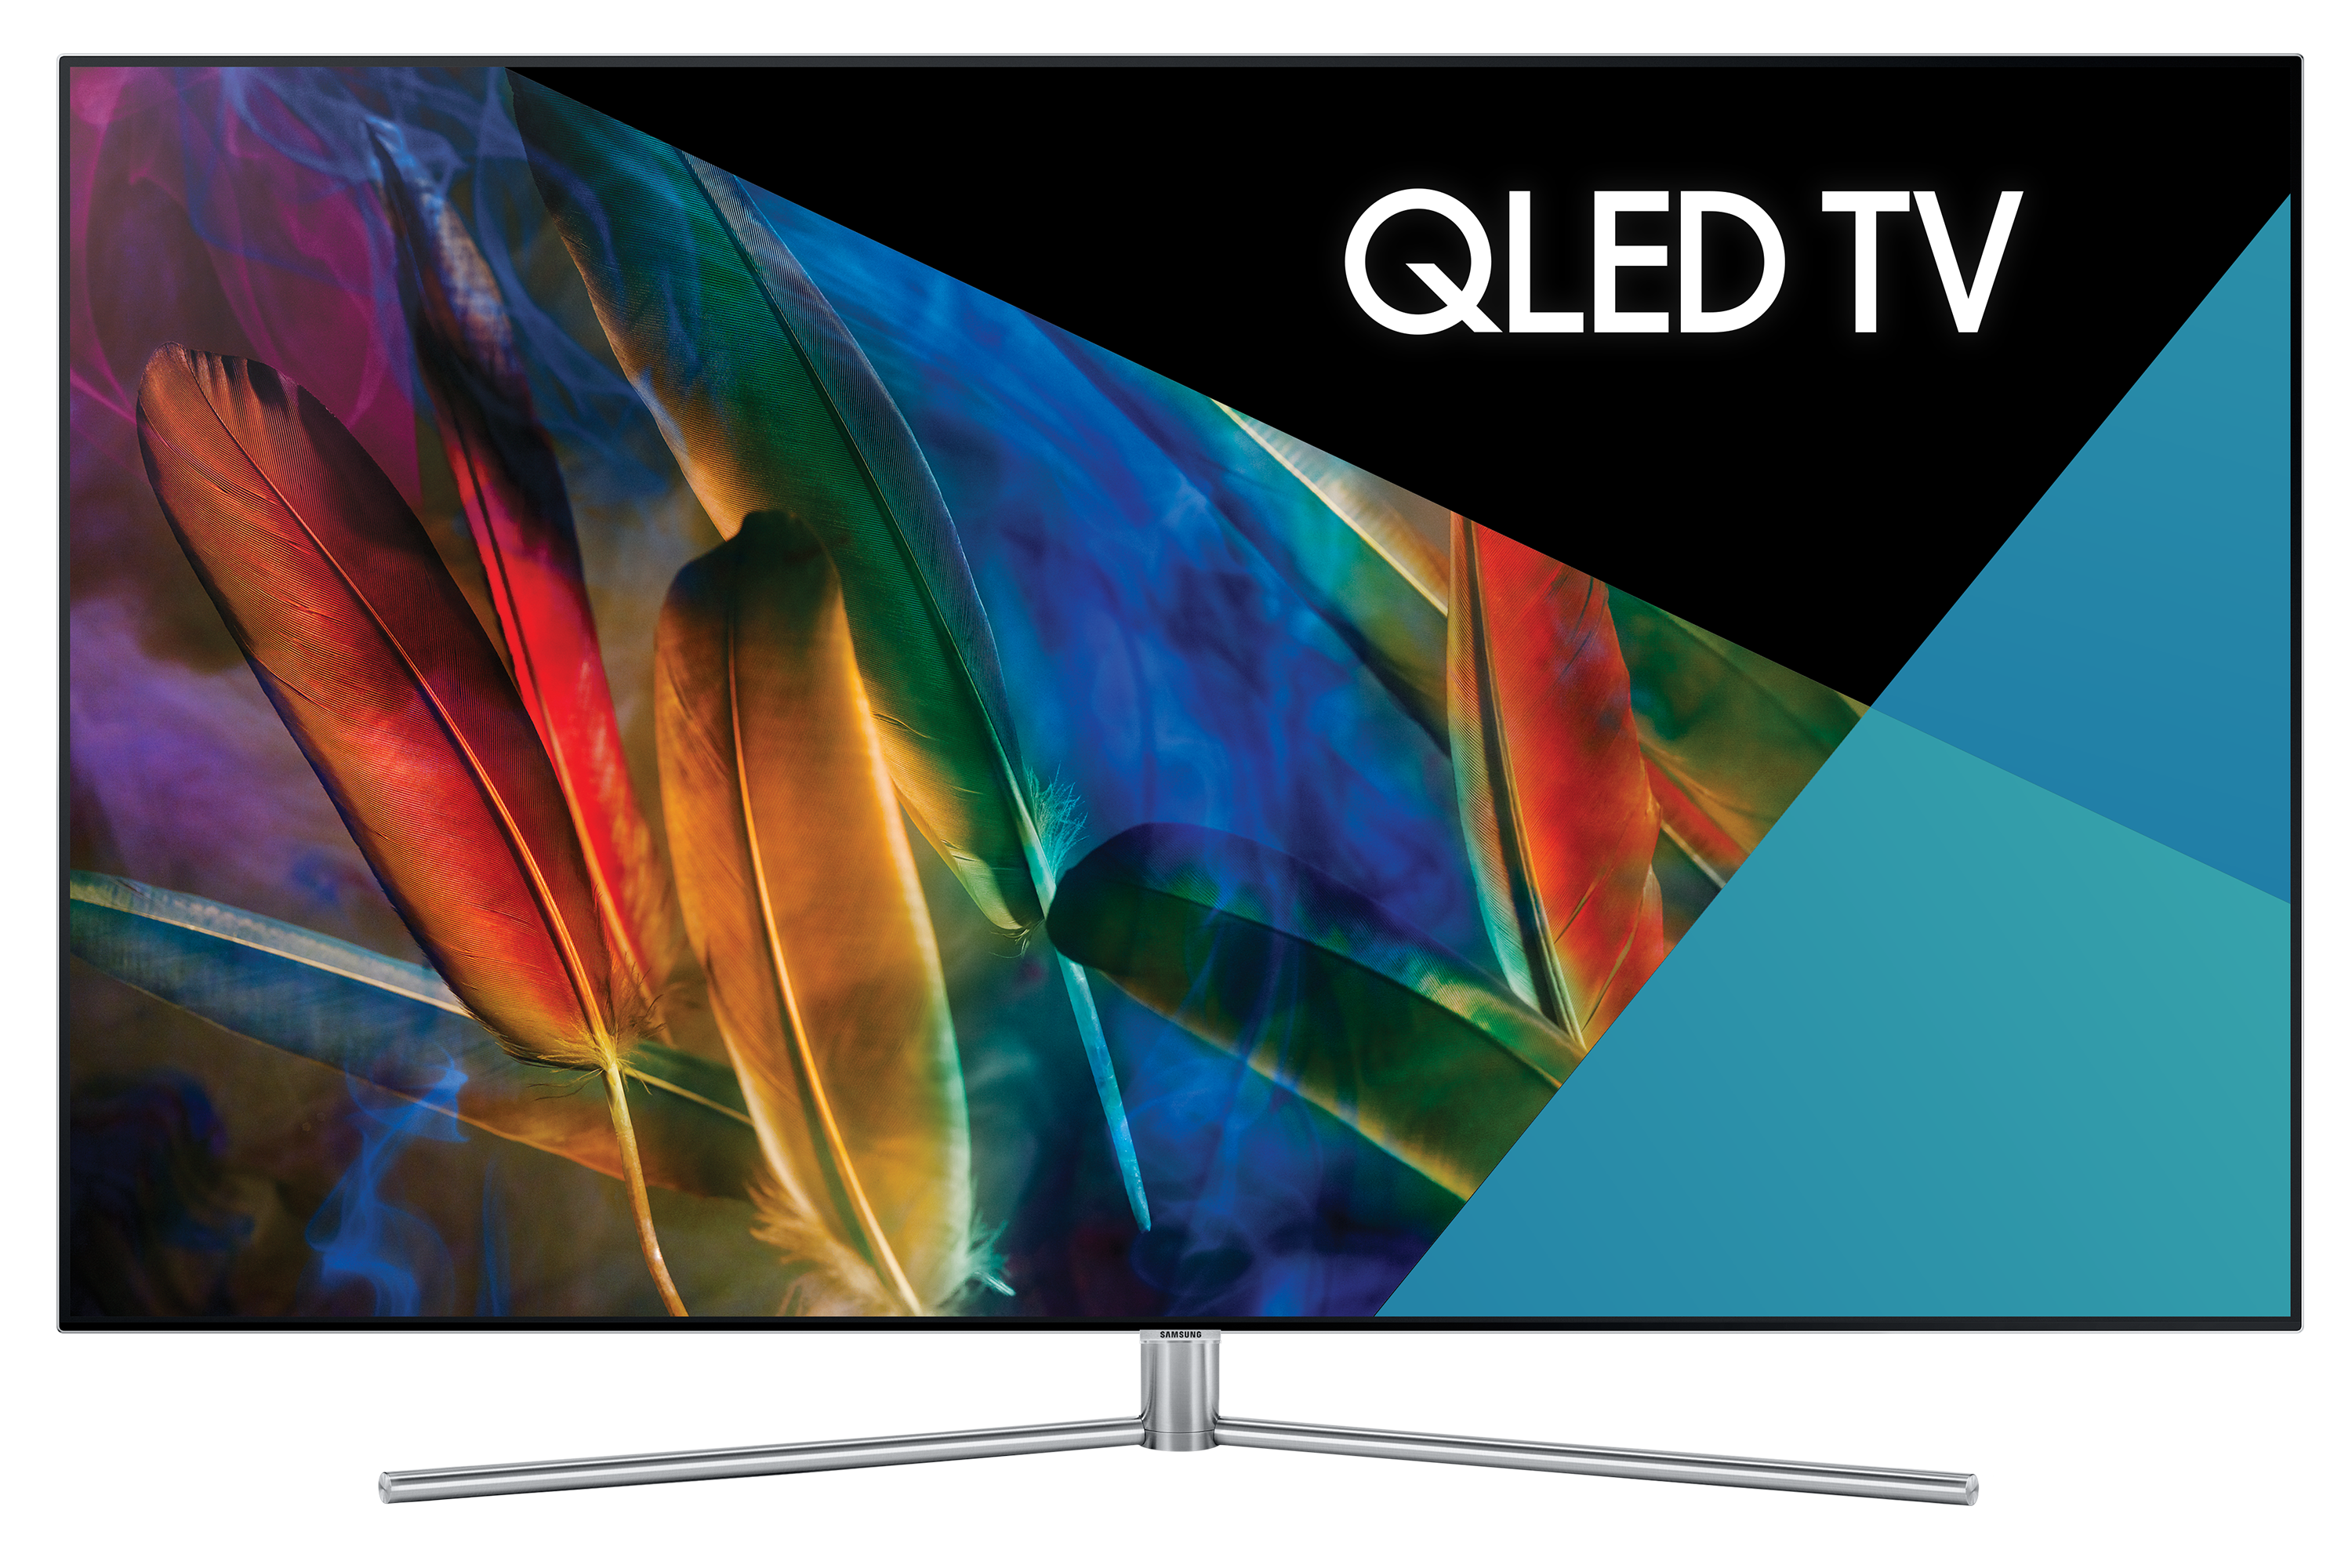 Series 7 55 inch Q7 UHD QLED TV*